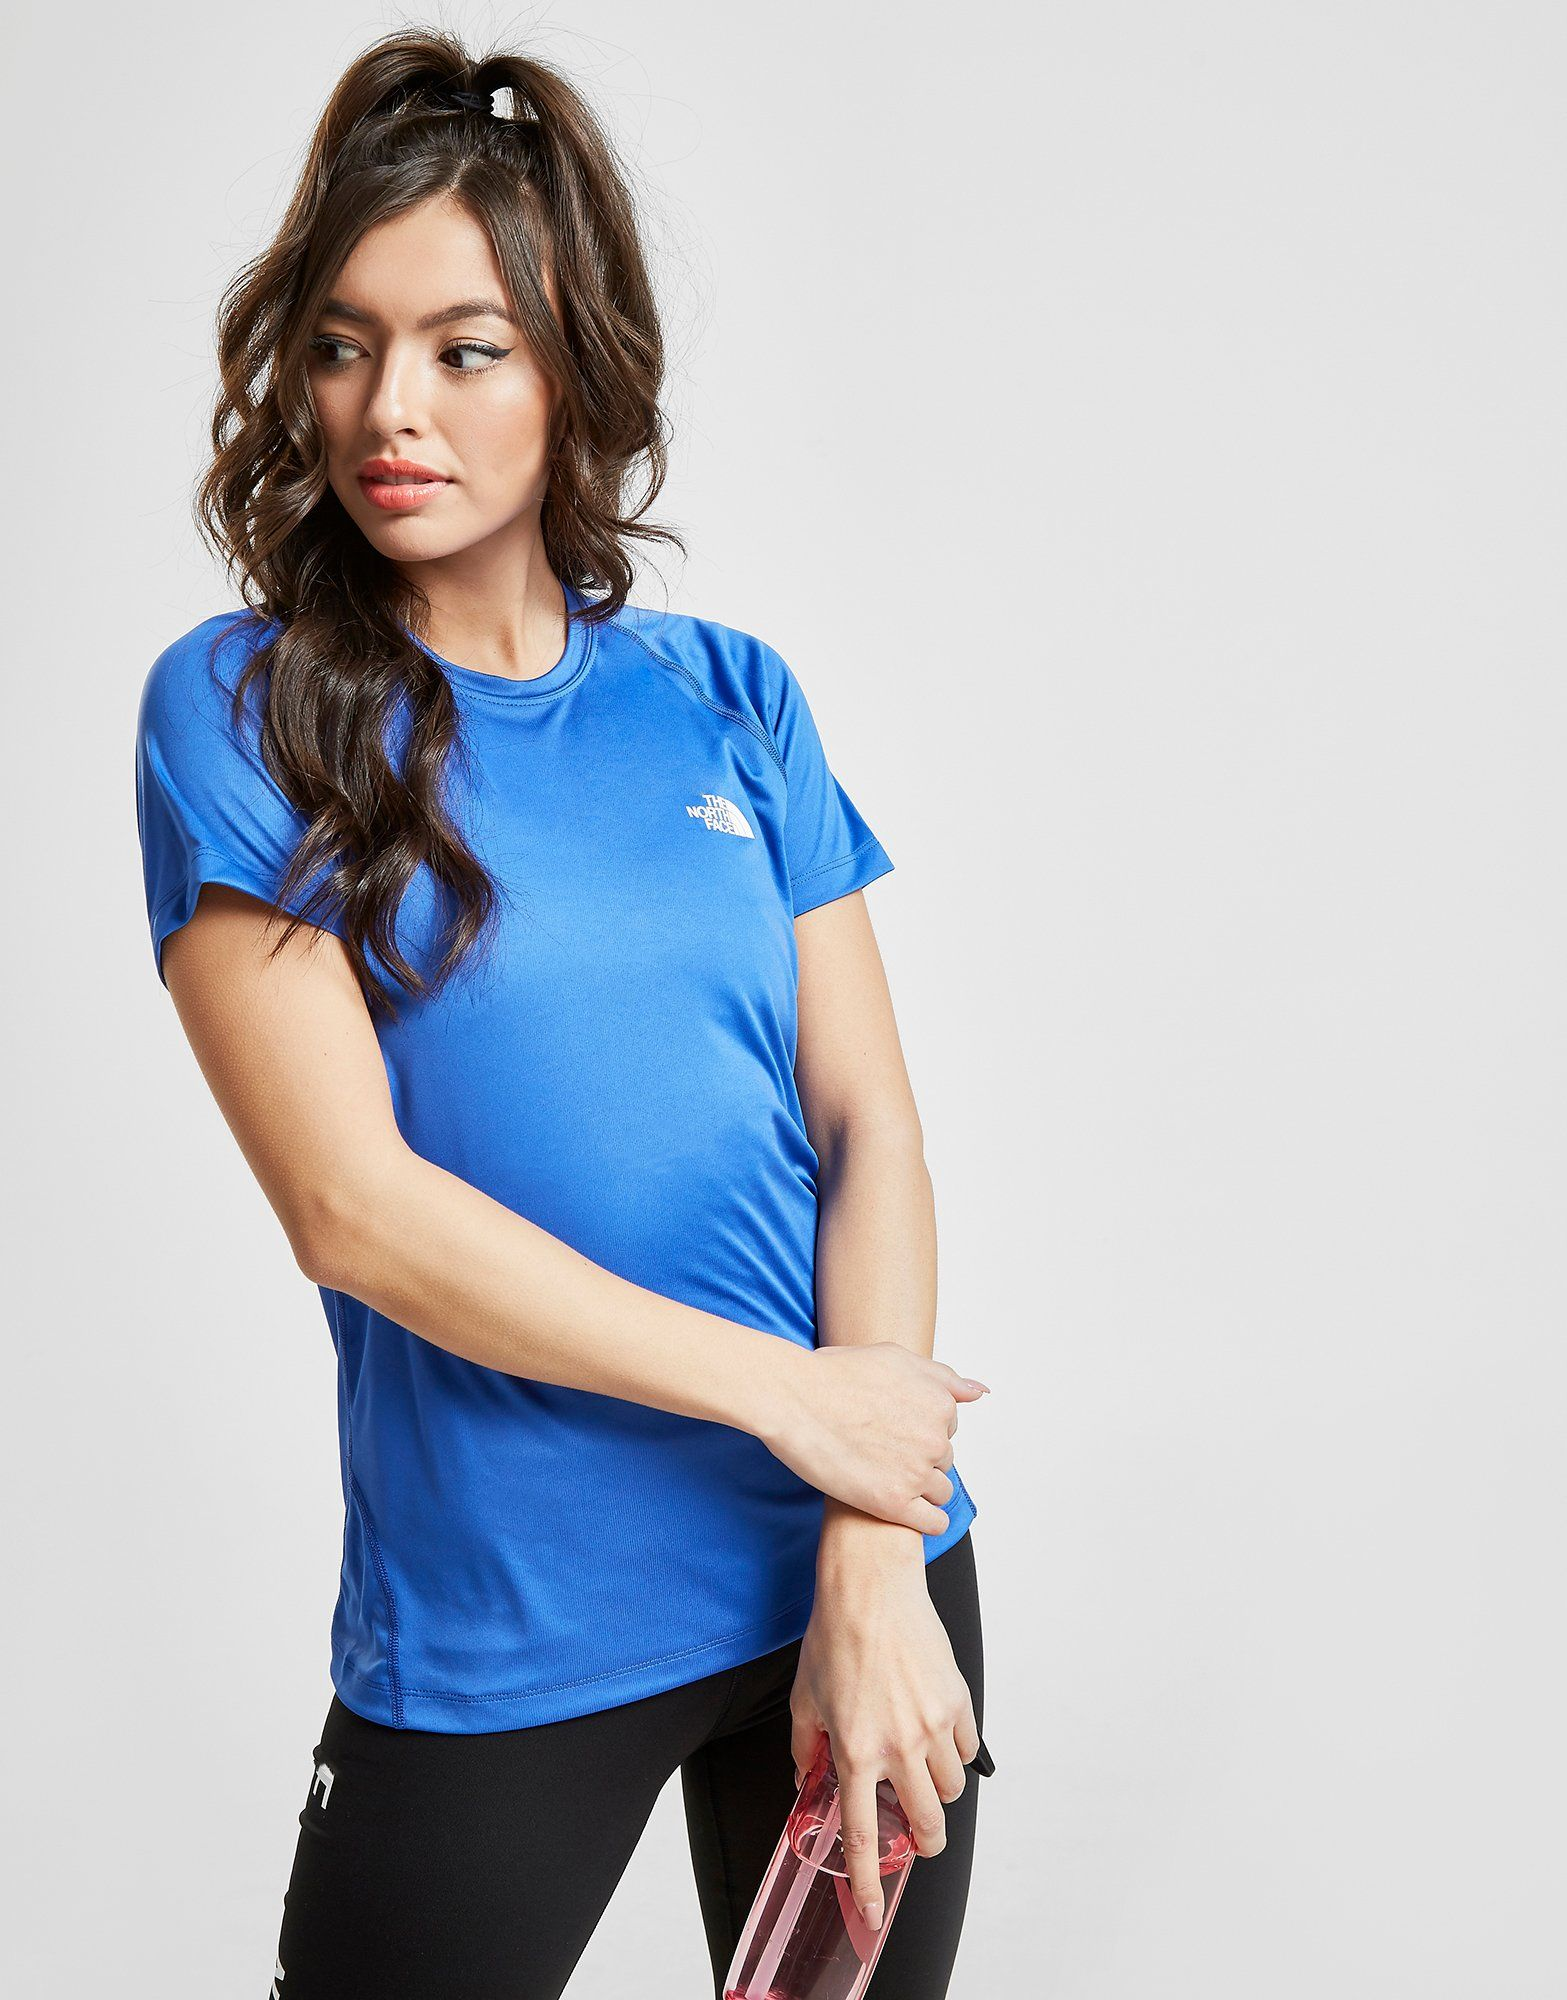 The North Face Flex Short Sleeve T-Shirt